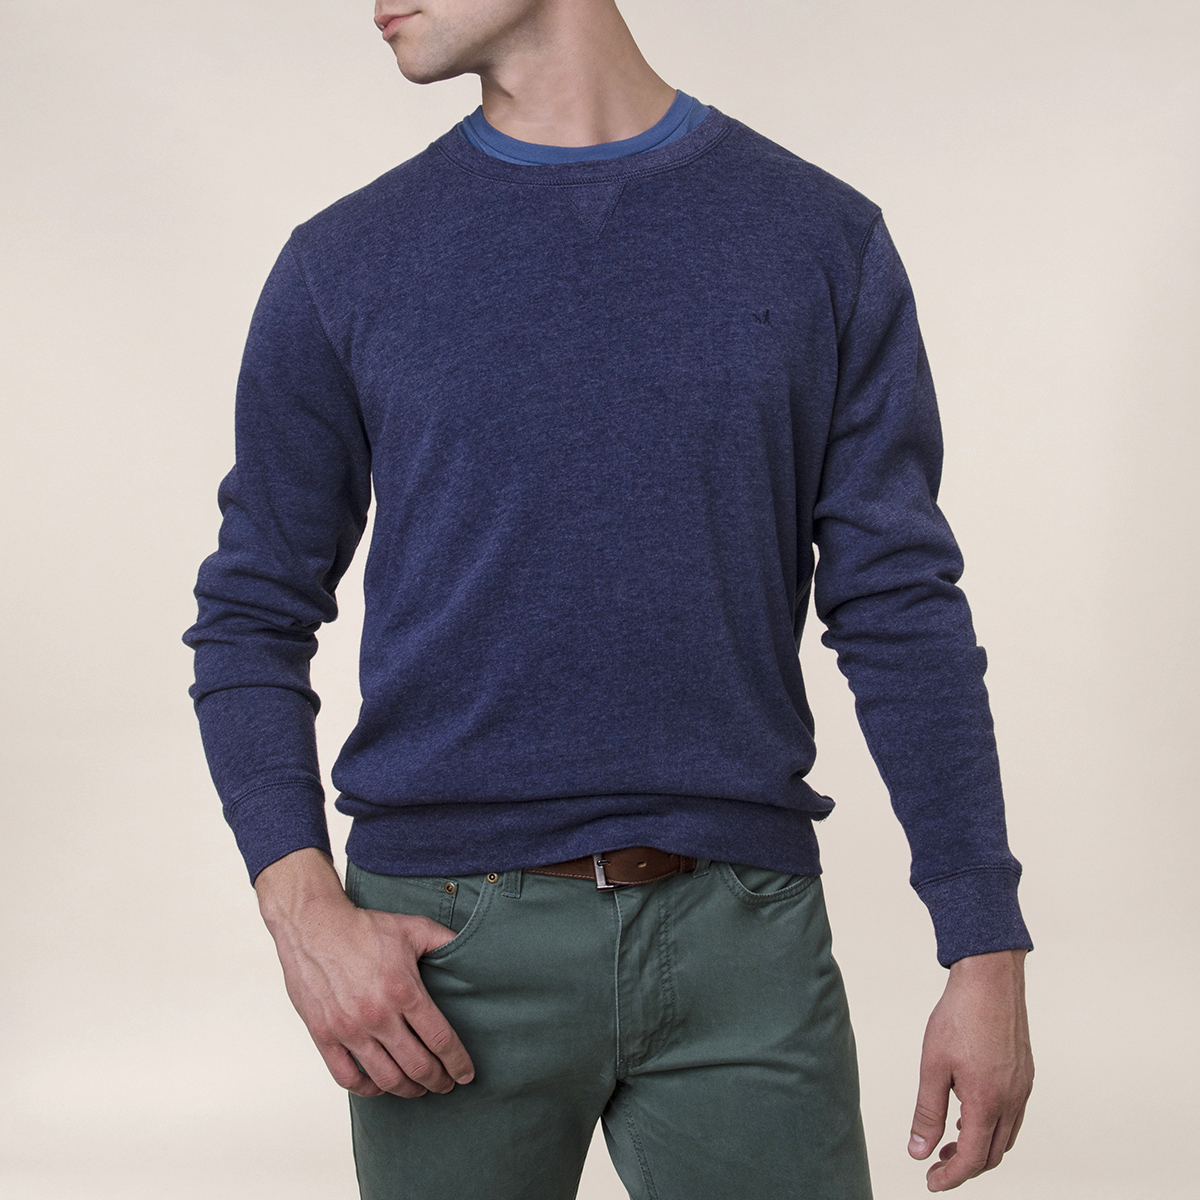 Poleron Liso Fleece Crew Light Weight